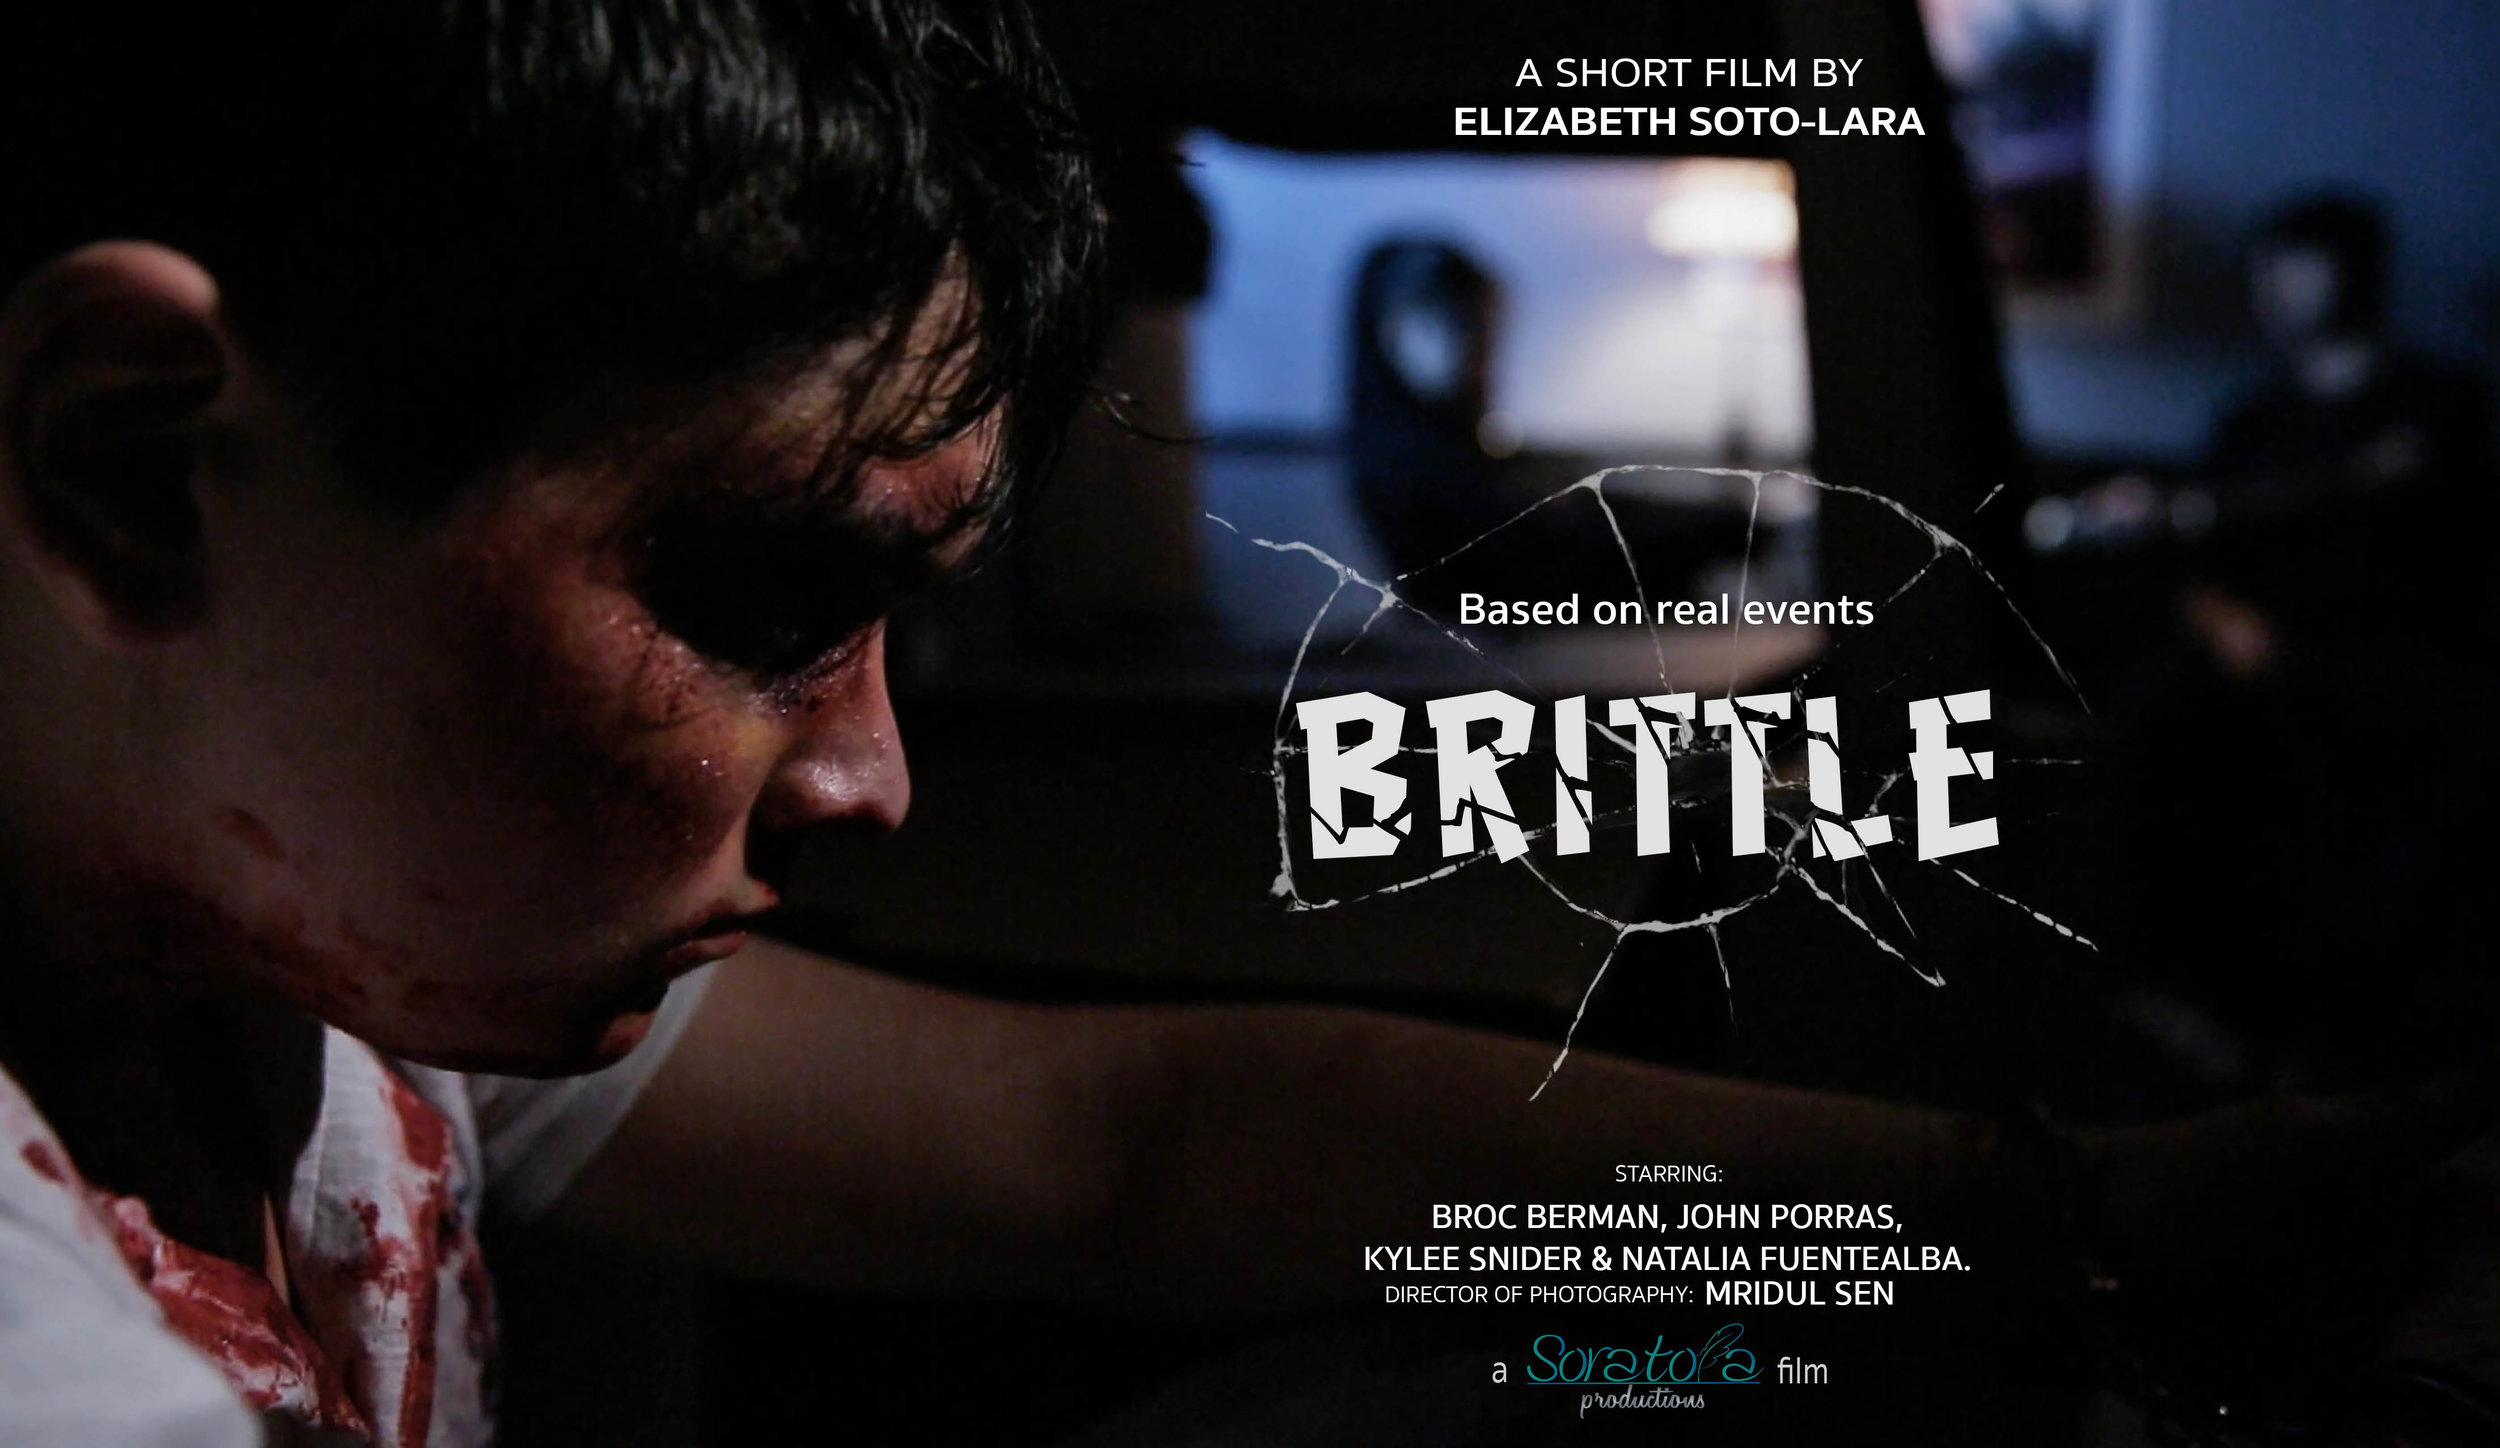 Brittle (2016) - (Short Film)Logline:A kidnapped young man that escaped from his captors wants to mend the bonds he used to have with his family but his paranoid delusions make him distrustful.Director/Screenwriter: Elizabeth Soto-Lara.Director of Photography: Mridul SenGenre: DramaCountries: USA-Mexico